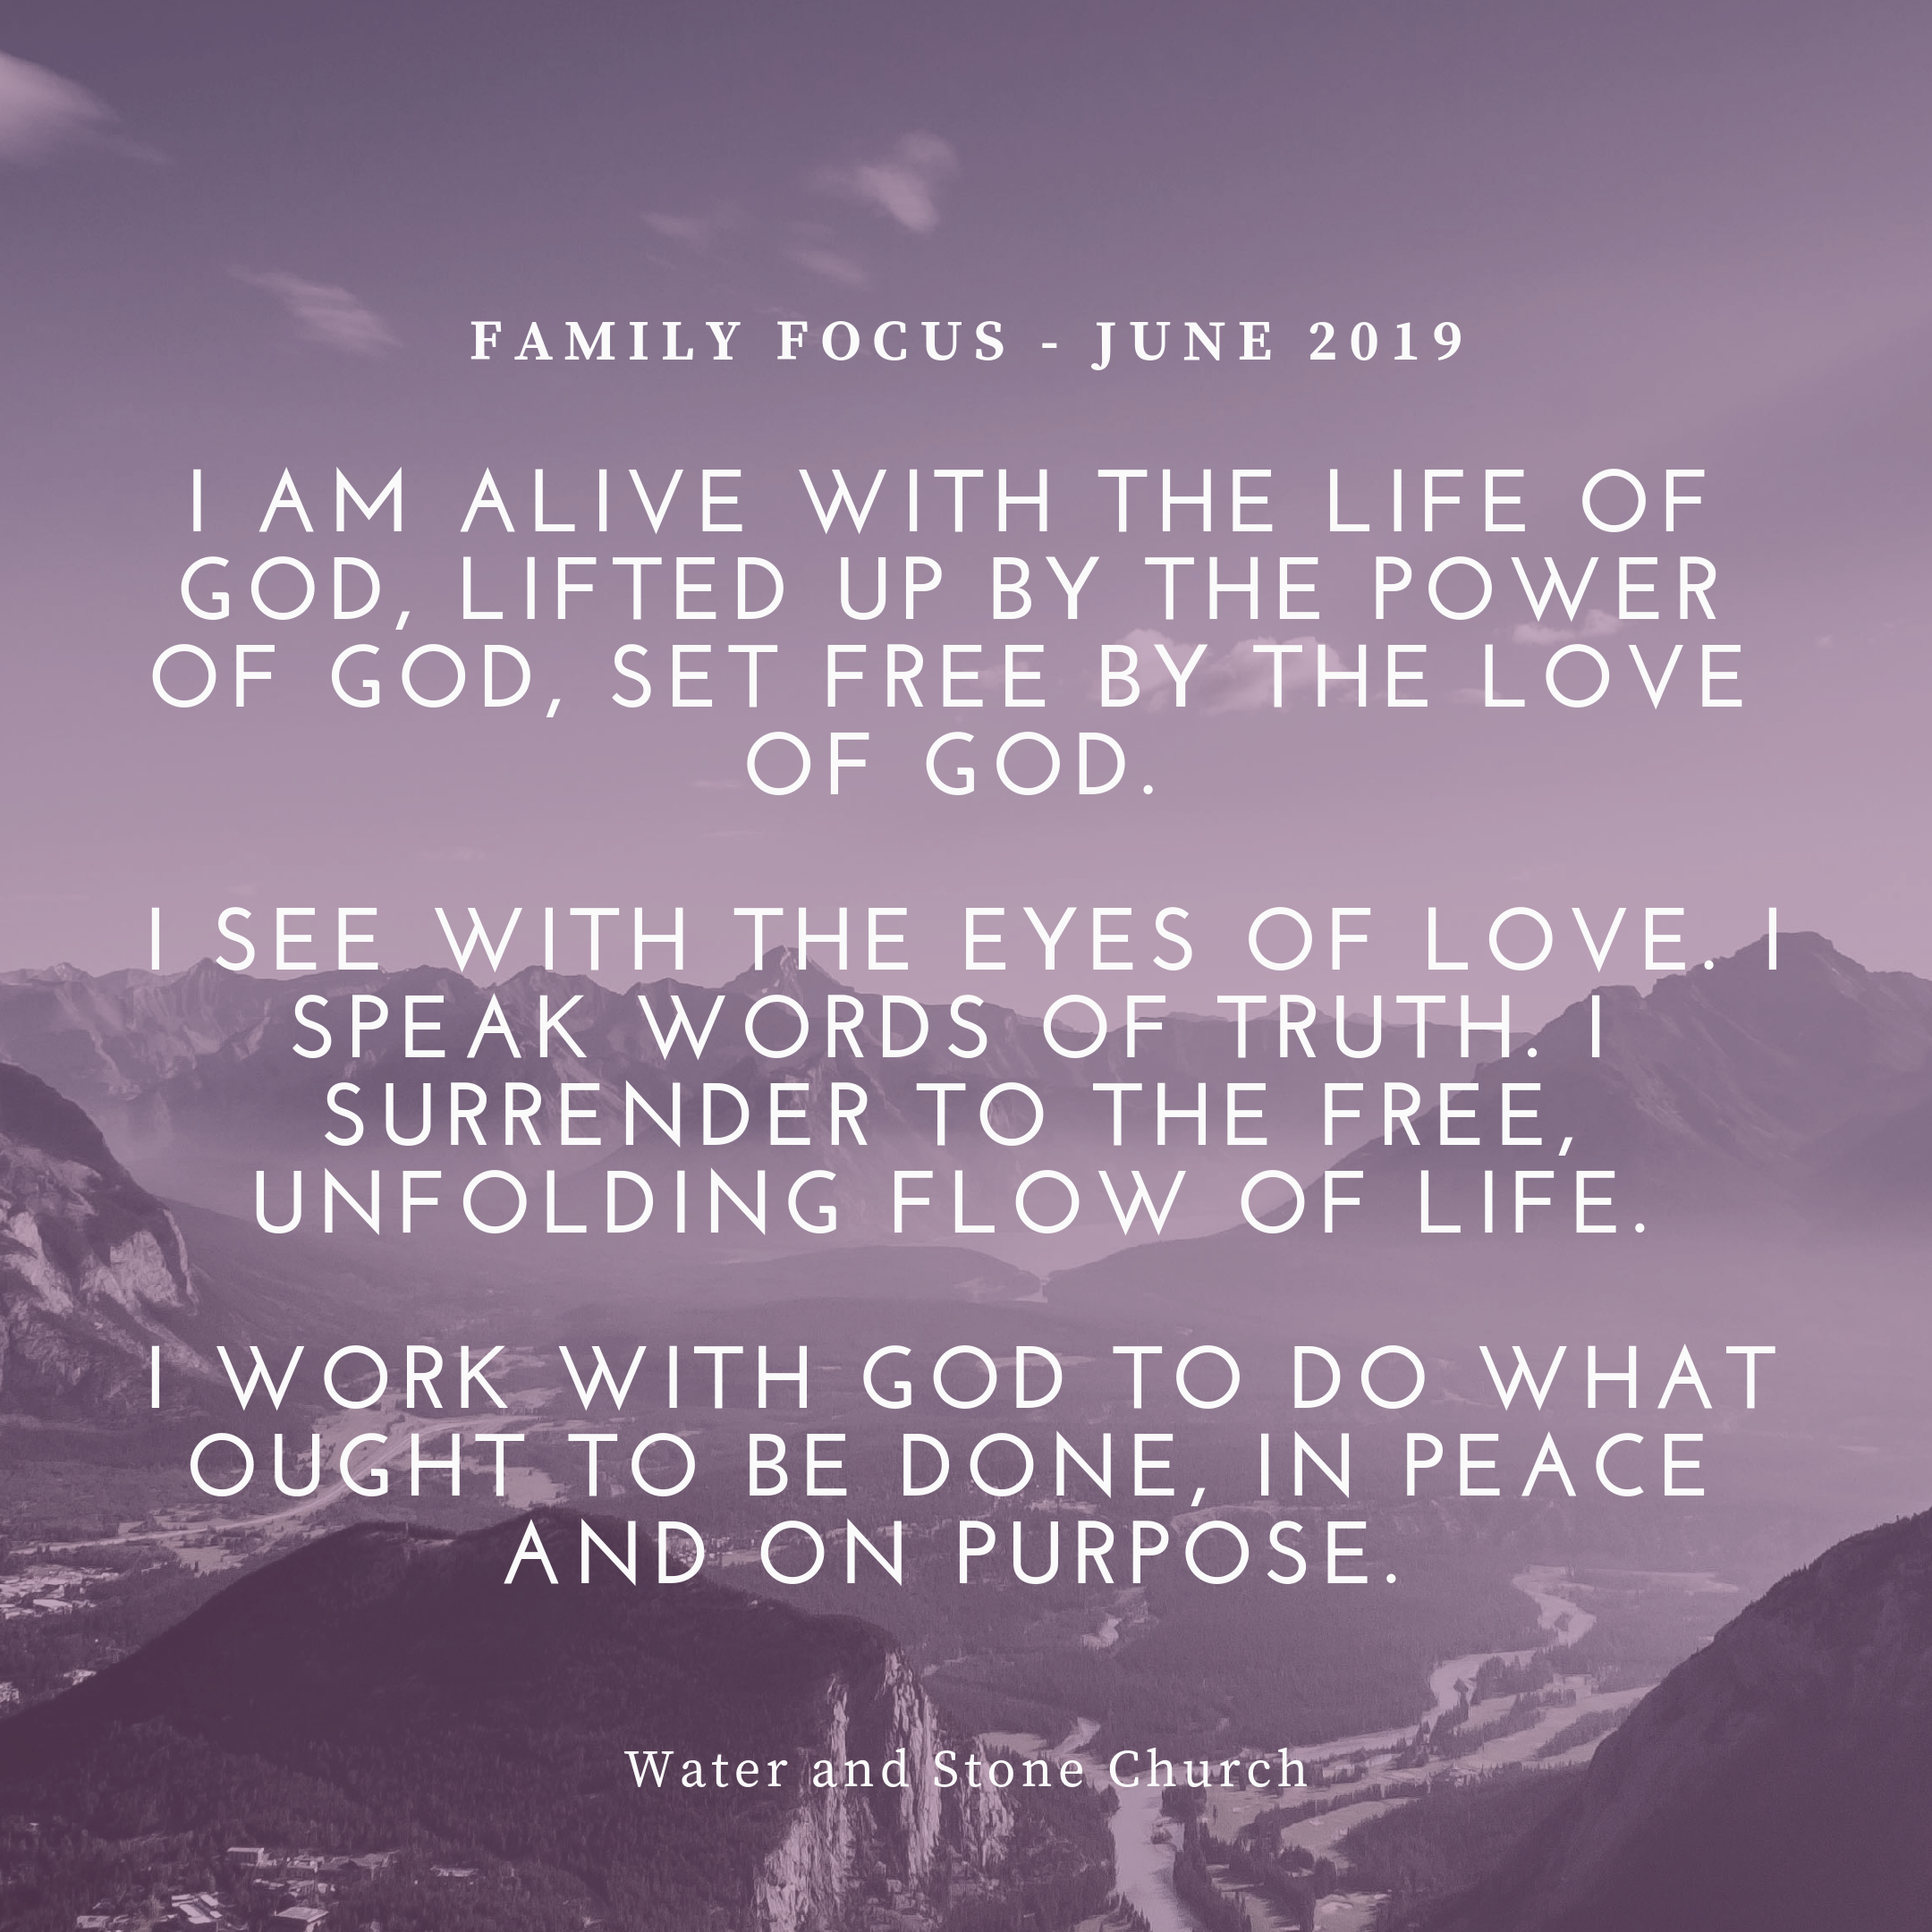 Family Focus - June 2019 — Water and Stone Church